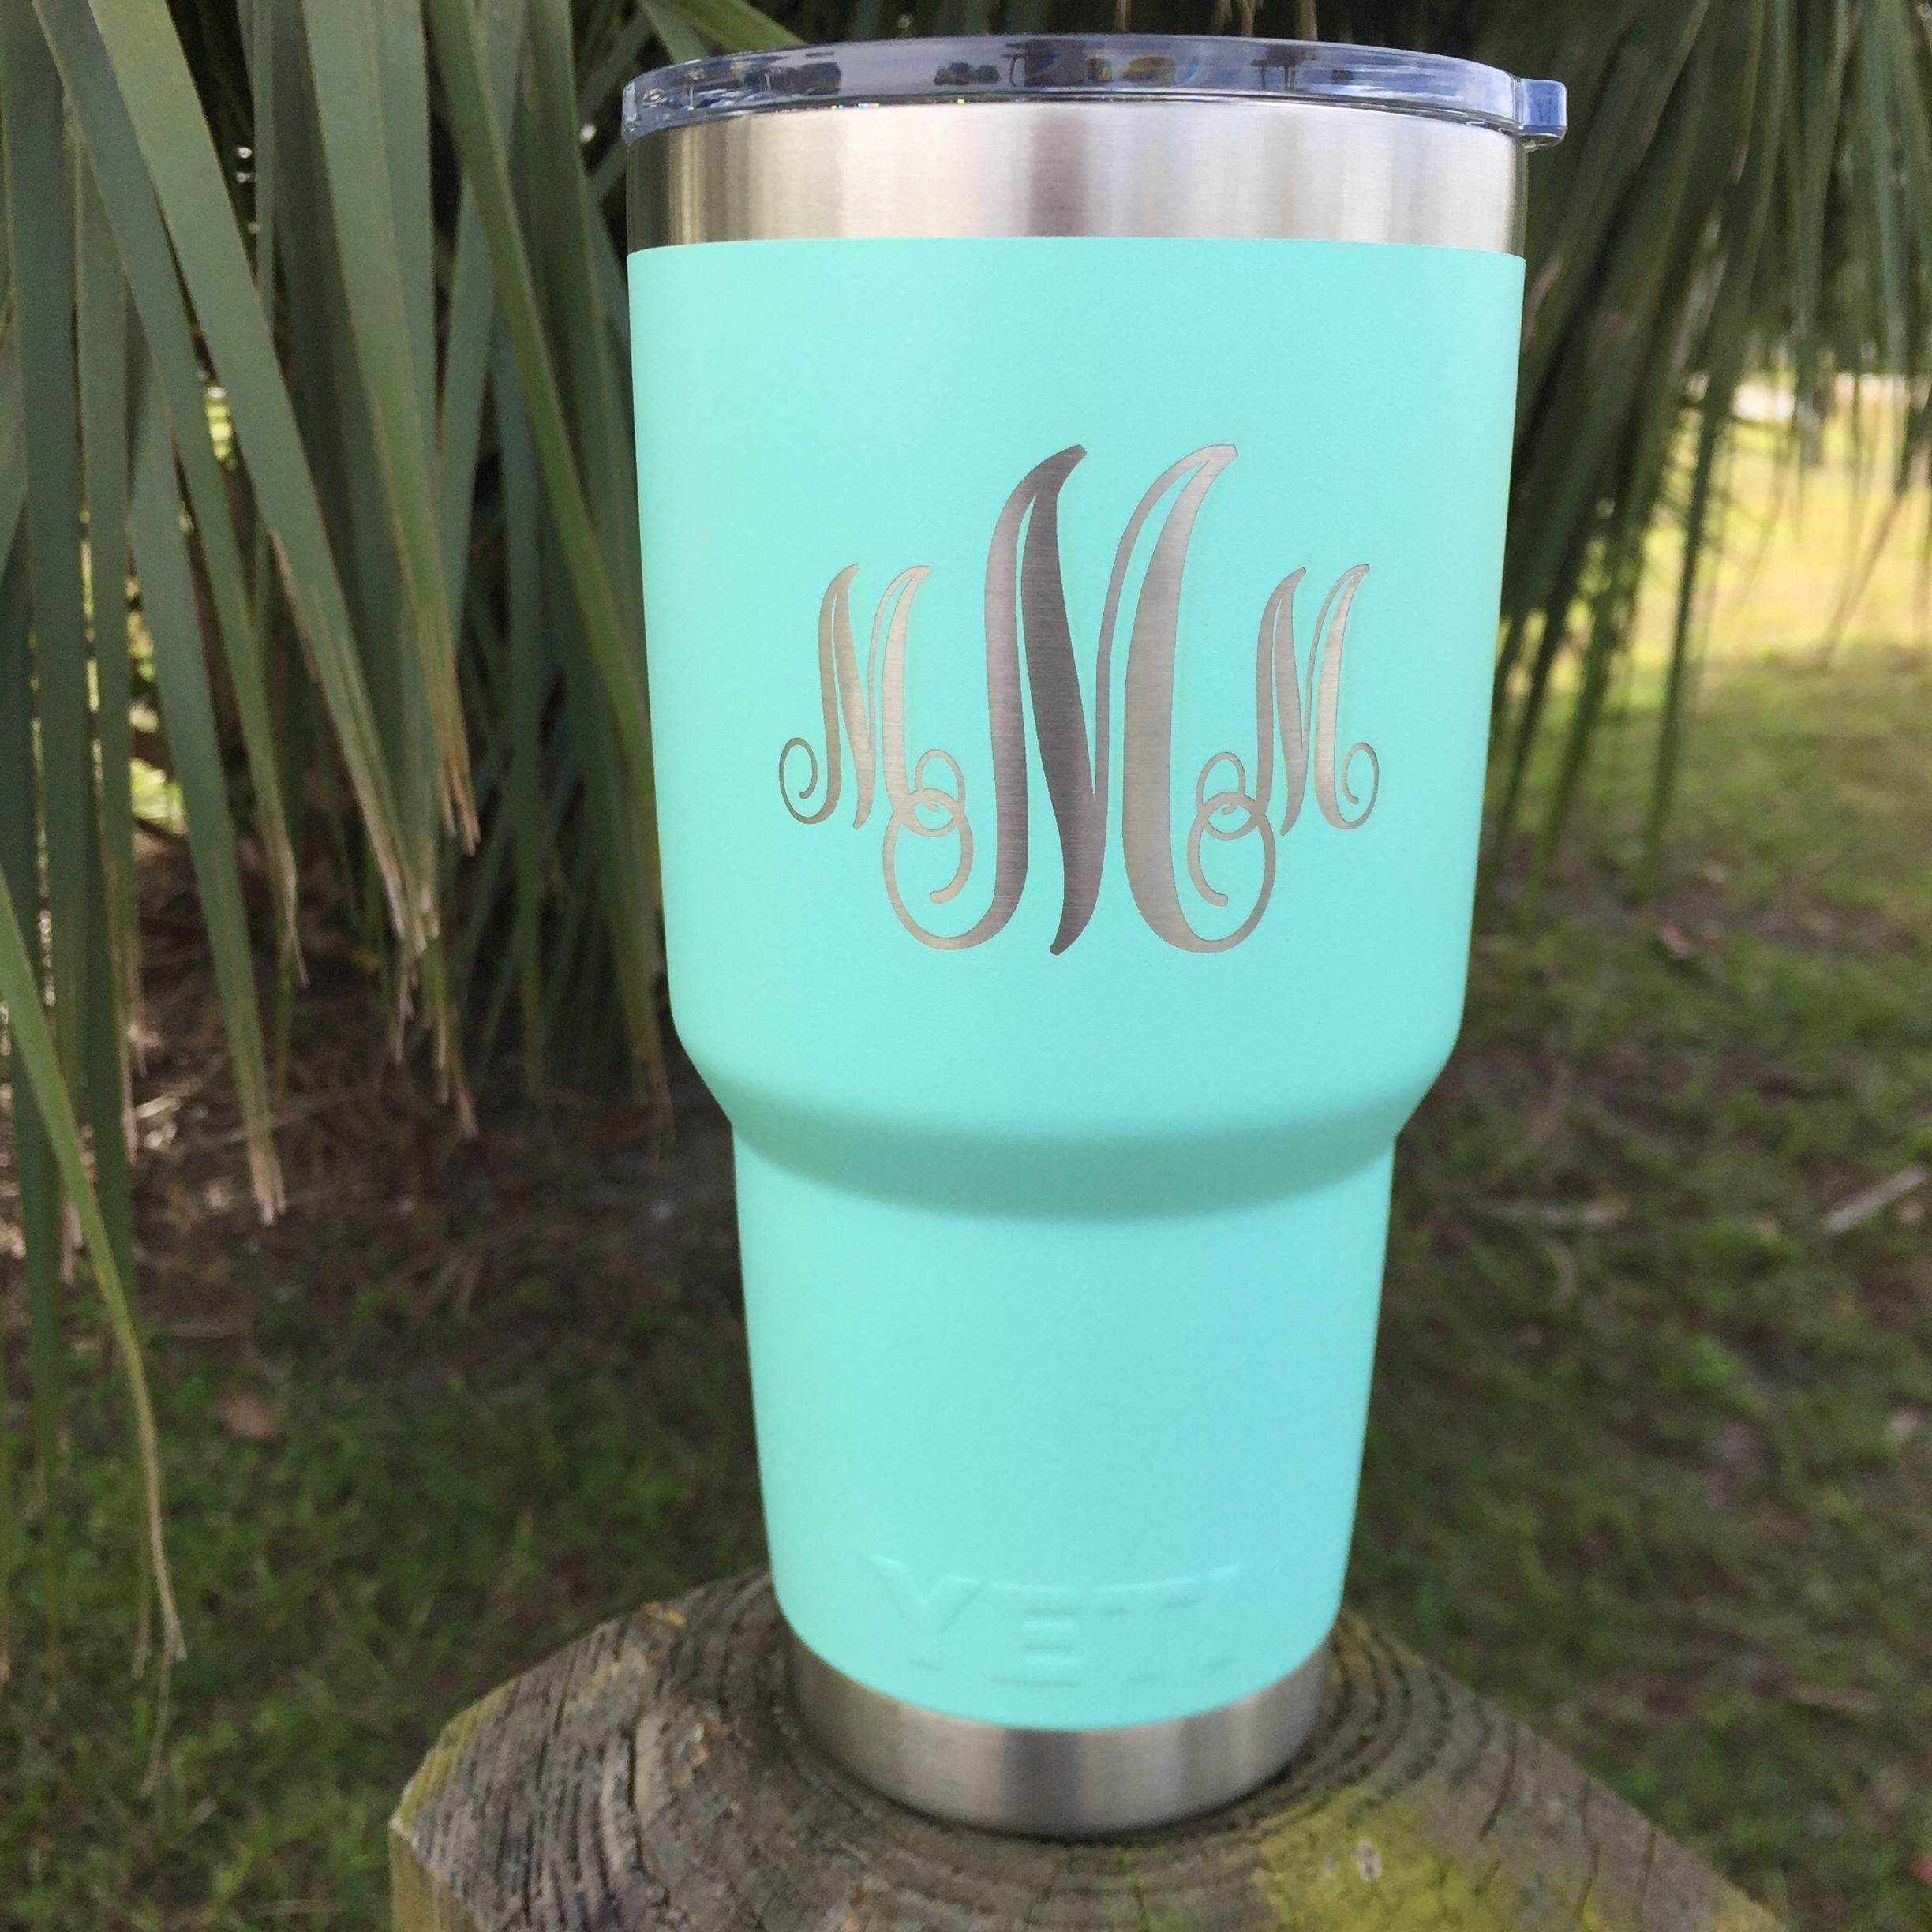 YETI Rambler Custom Engraved w/Monogram Design New DuraCoat COLORS: White, Seafoam Green, Navy, Brick Red, Black or Original Stainless Steel